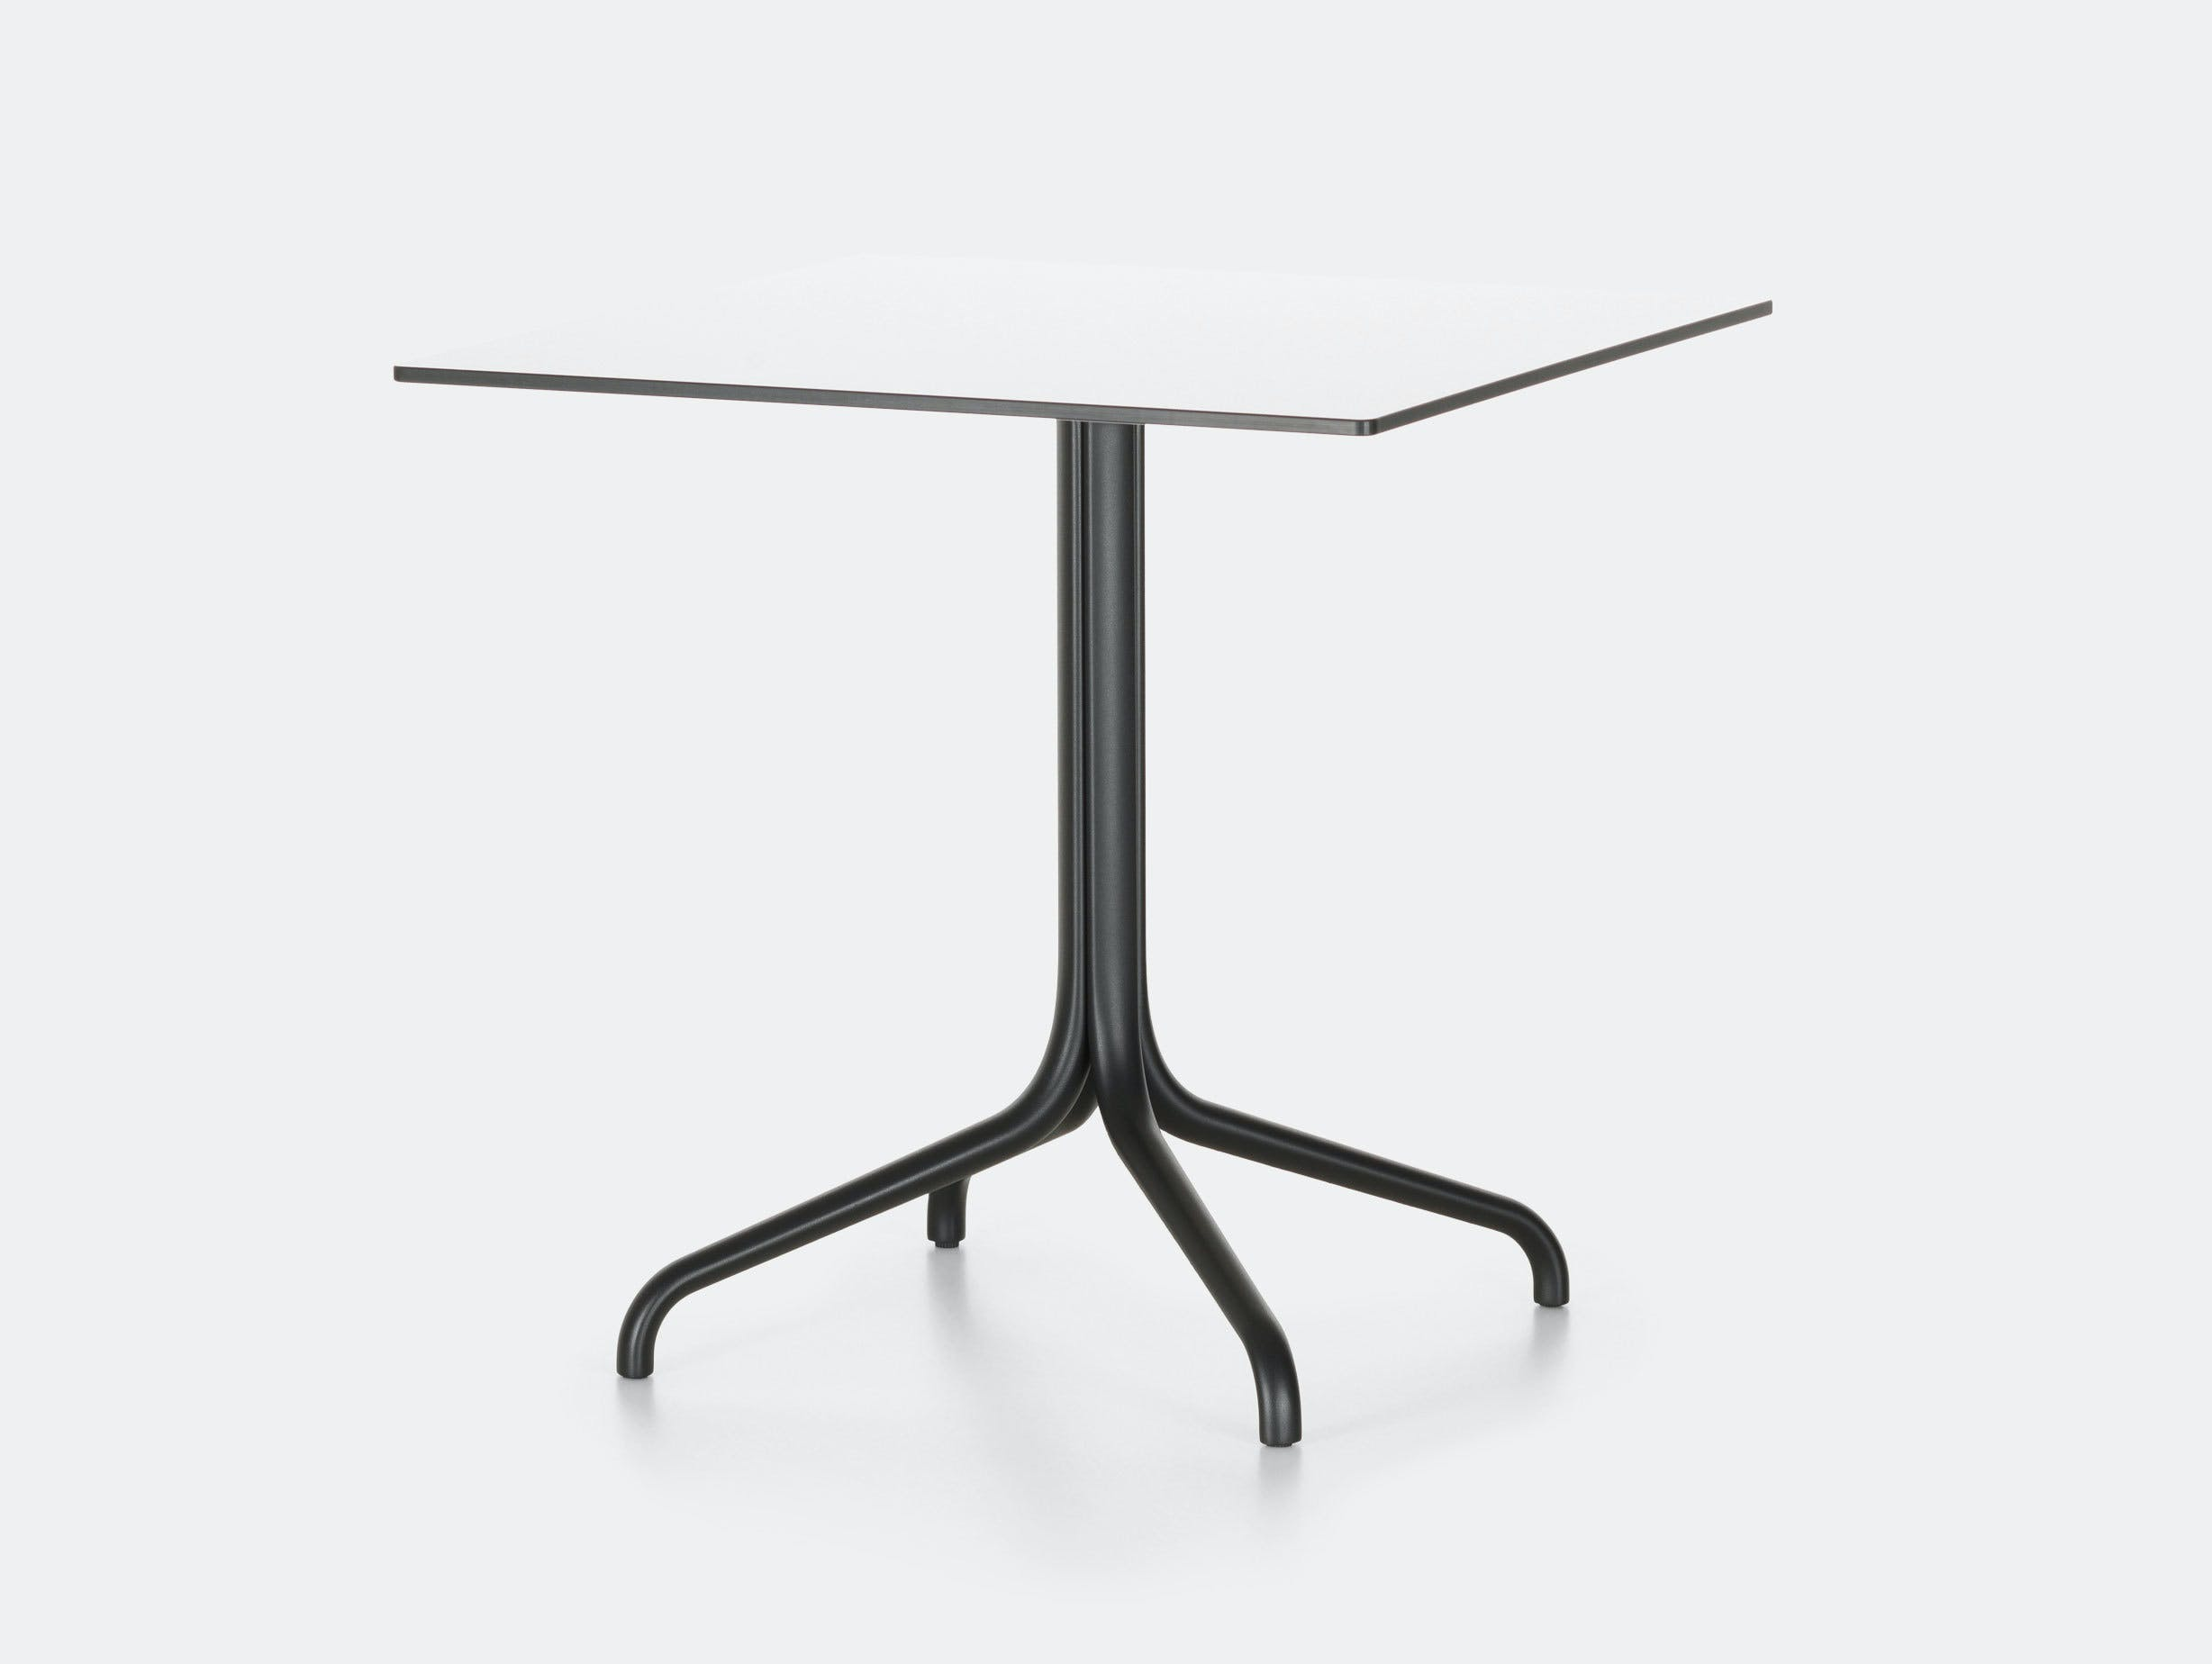 Vitra Belleville Outdoor Table Square White Ronan Erwan Bouroullec